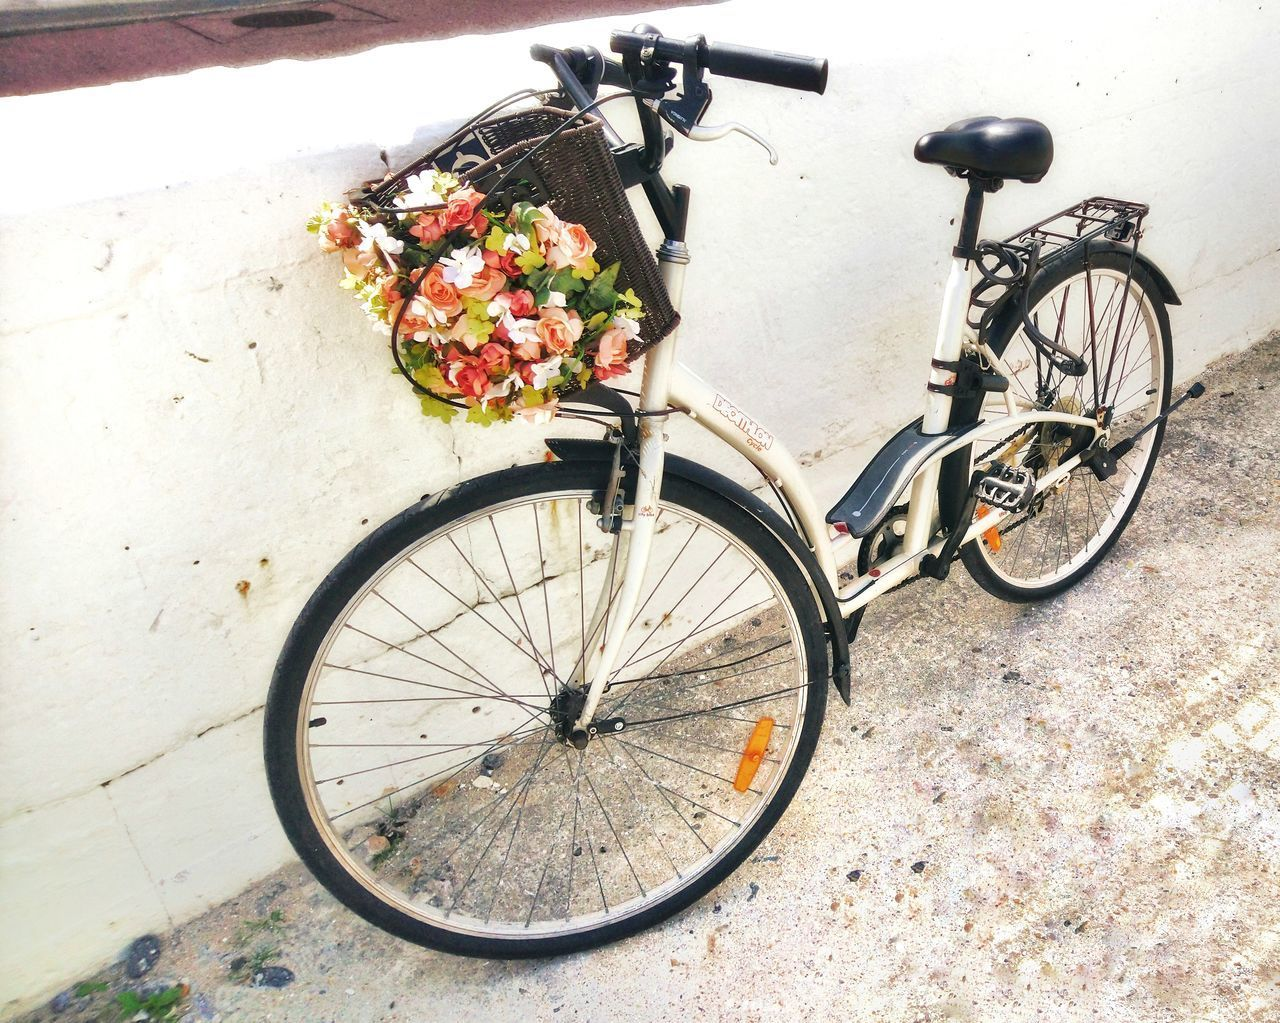 bicycle, land vehicle, transportation, mode of transportation, stationary, bicycle basket, basket, no people, travel, day, container, parking, high angle view, outdoors, flowering plant, flower, nature, architecture, city, plant, wheel, spoke